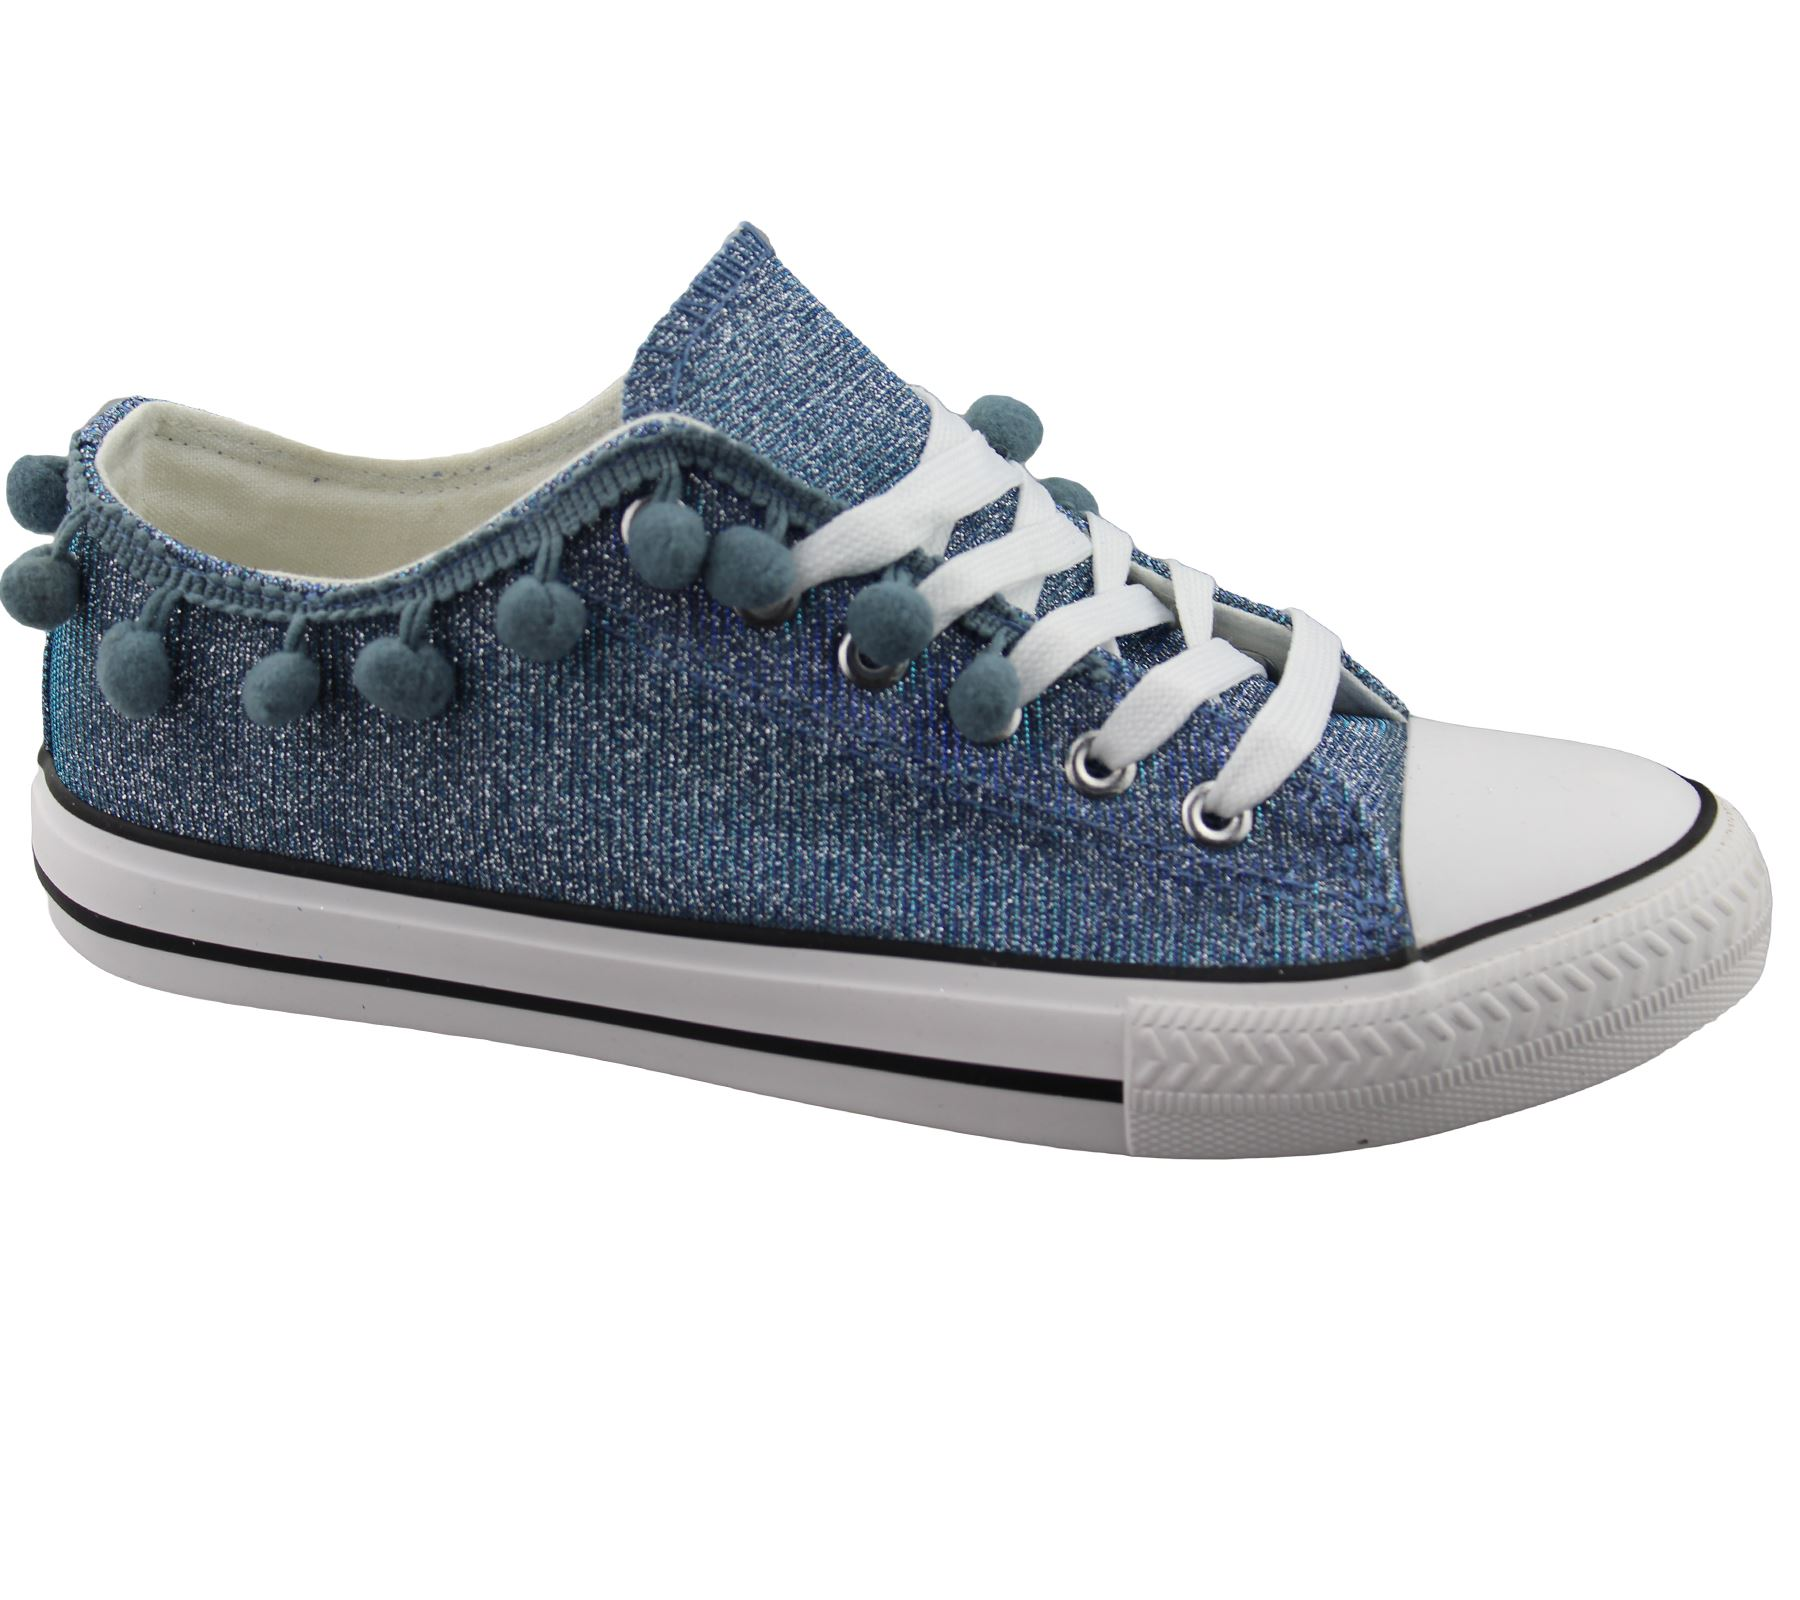 Womens-Sneakers-Flat-Pumps-Ladies-Glittered-Summer-Plimsole-Canvas-Shoes thumbnail 26